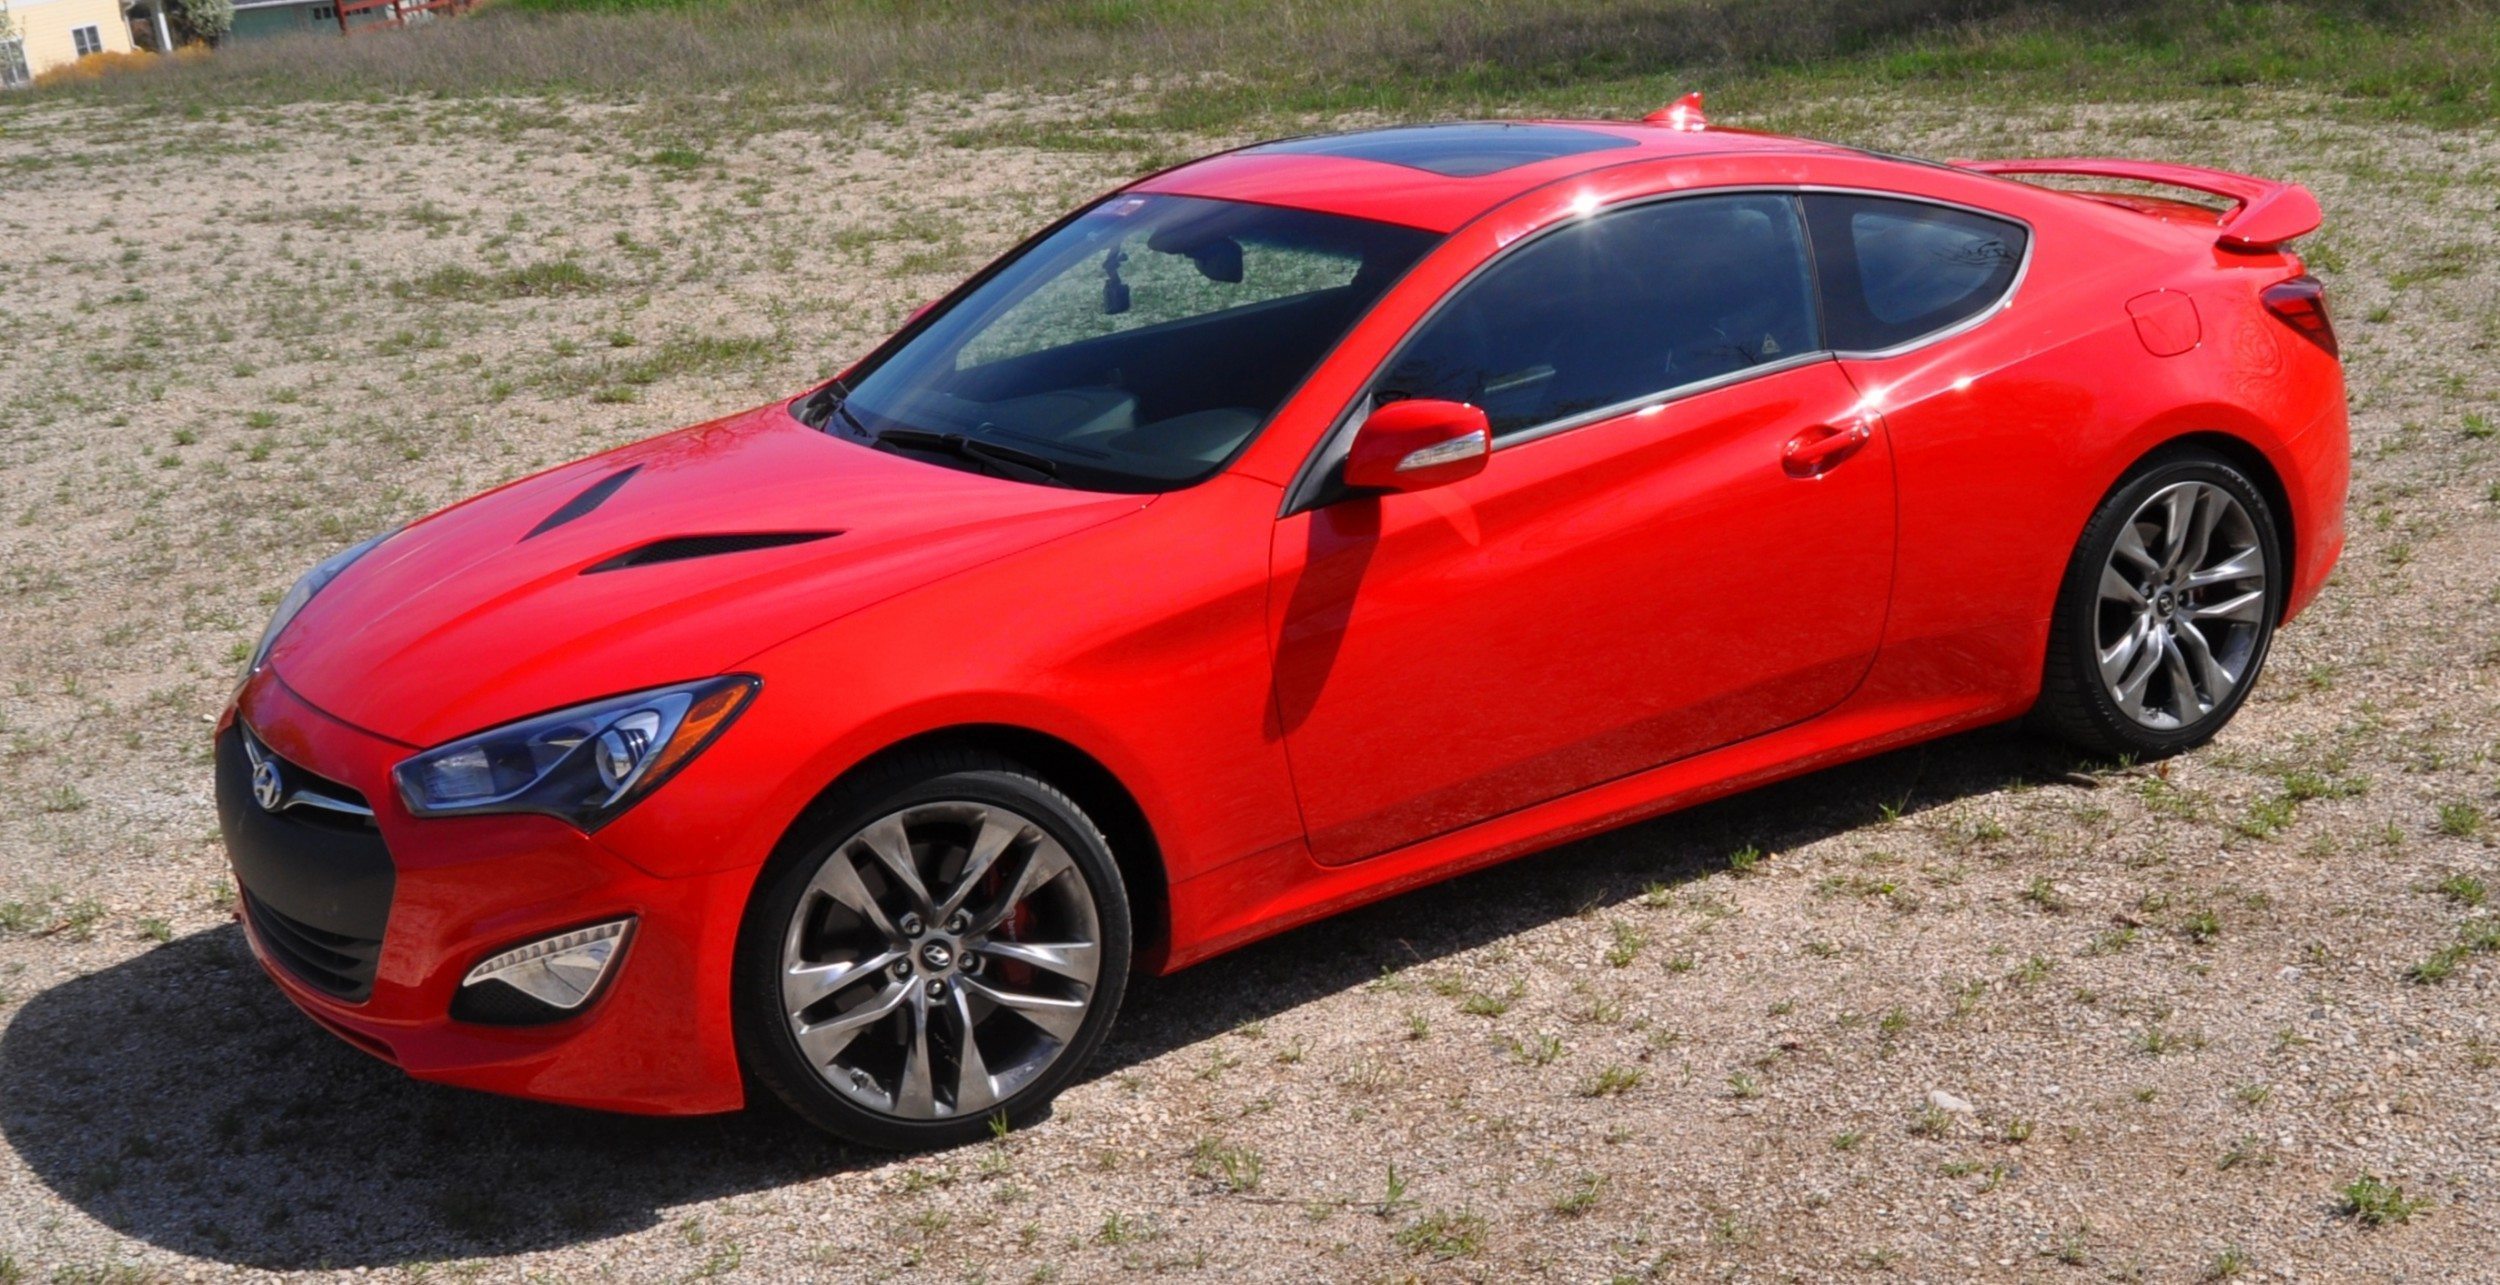 2014 hyundai genesis coupe 3 8l v6 r spec road test review of fast and fun rwd sportscar 104. Black Bedroom Furniture Sets. Home Design Ideas